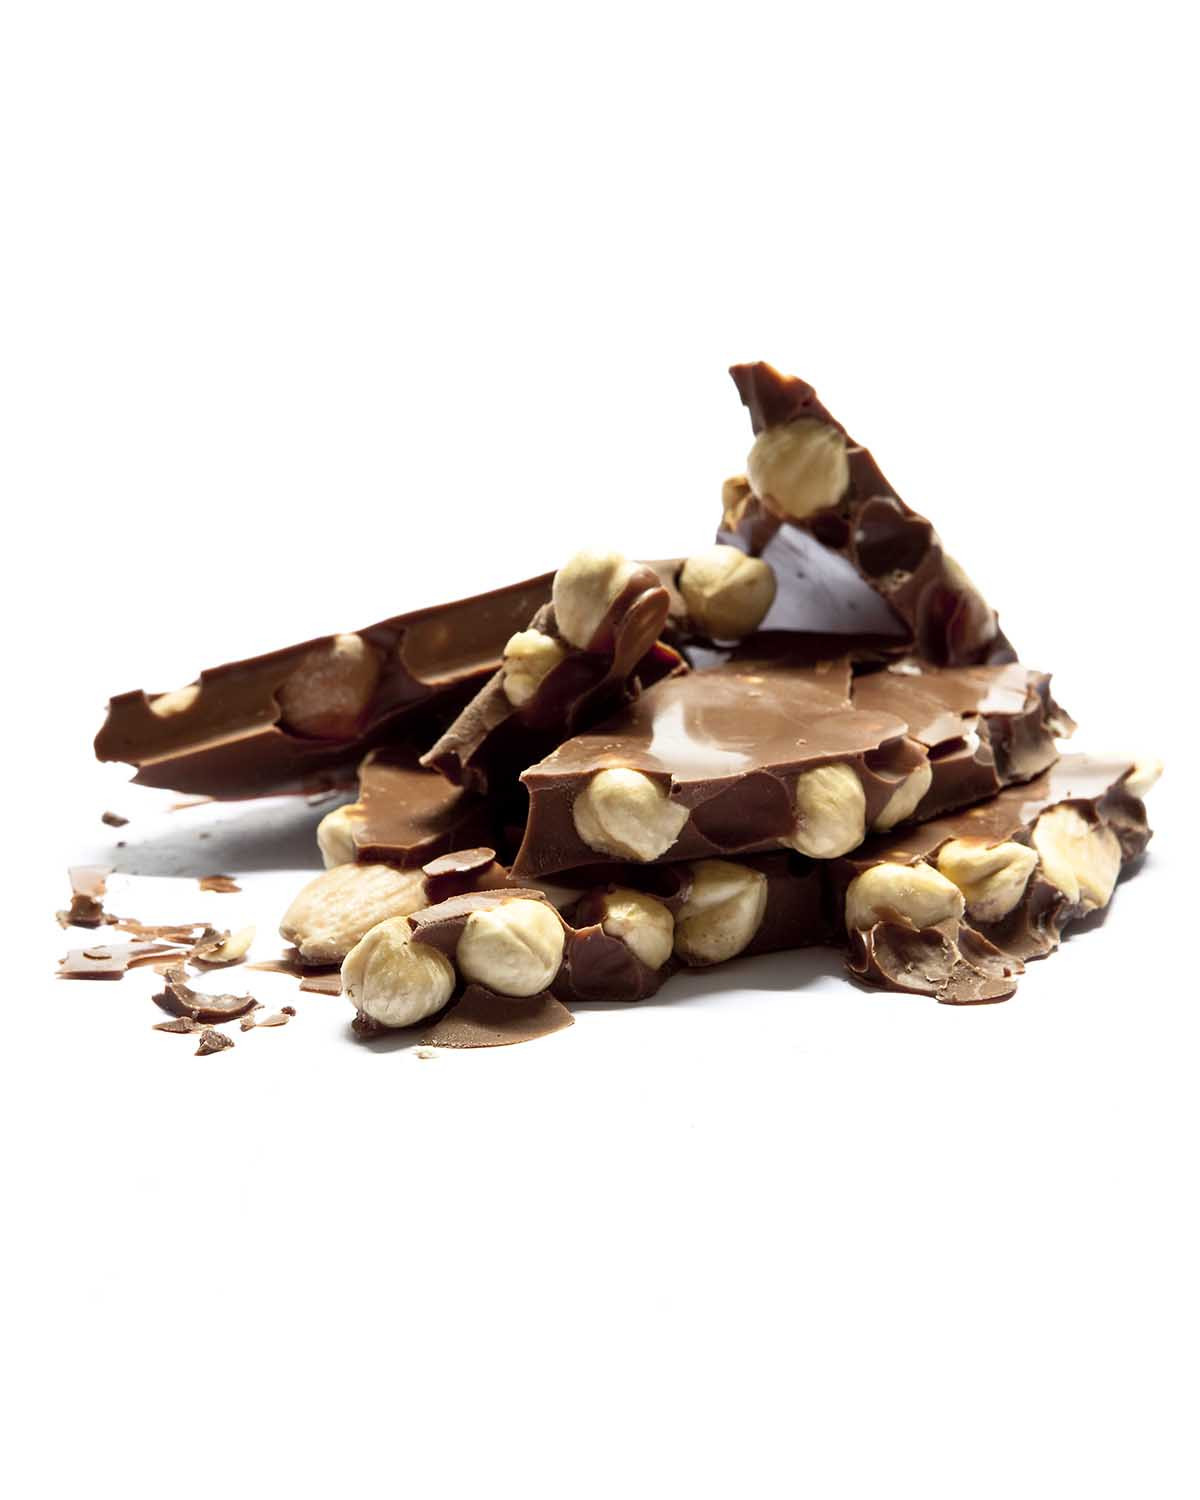 Milk chocolate slabs with nuts